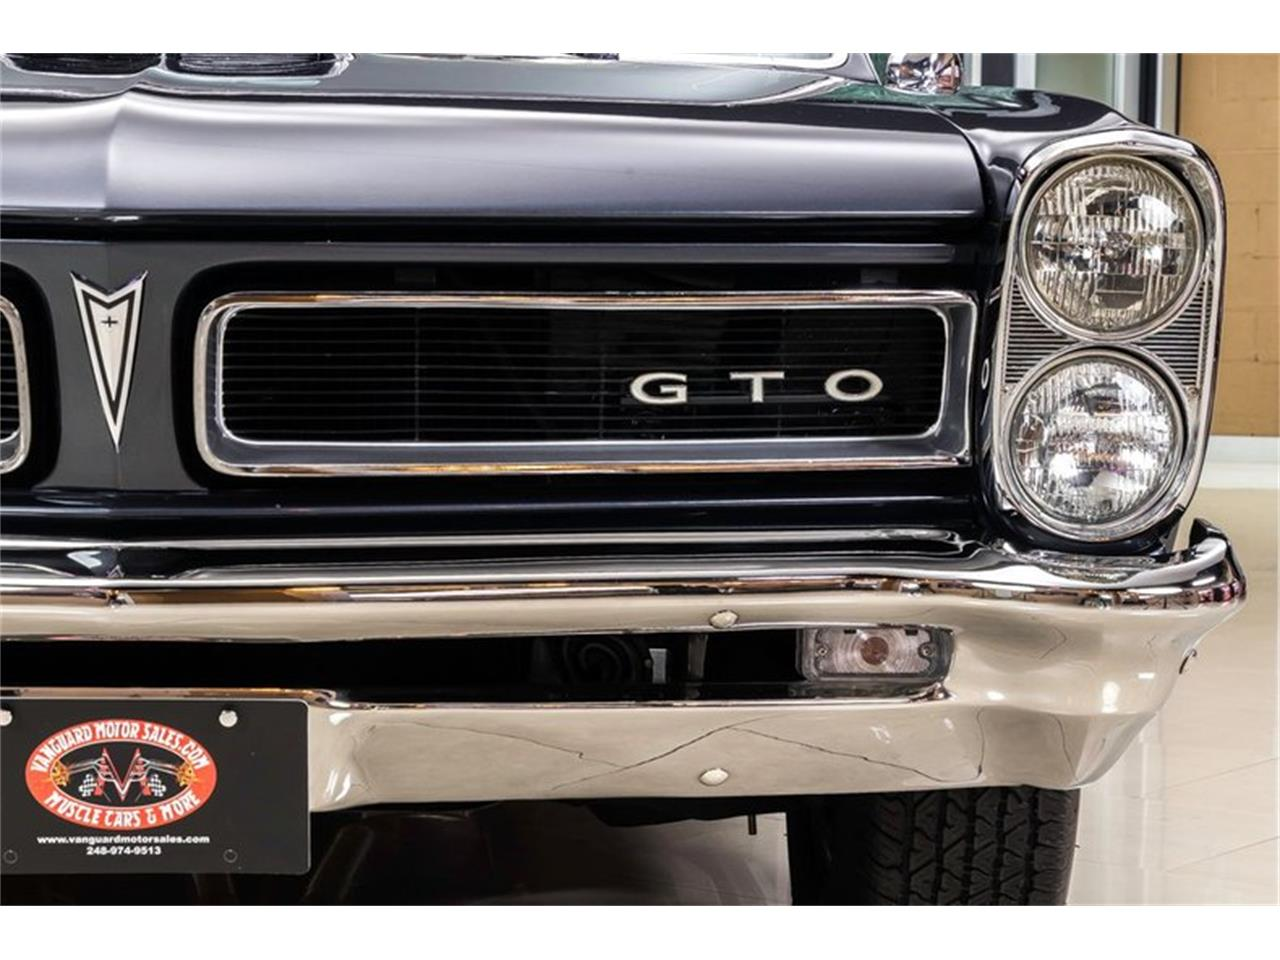 Large Picture of Classic 1965 GTO located in Michigan - $69,900.00 - R1WY